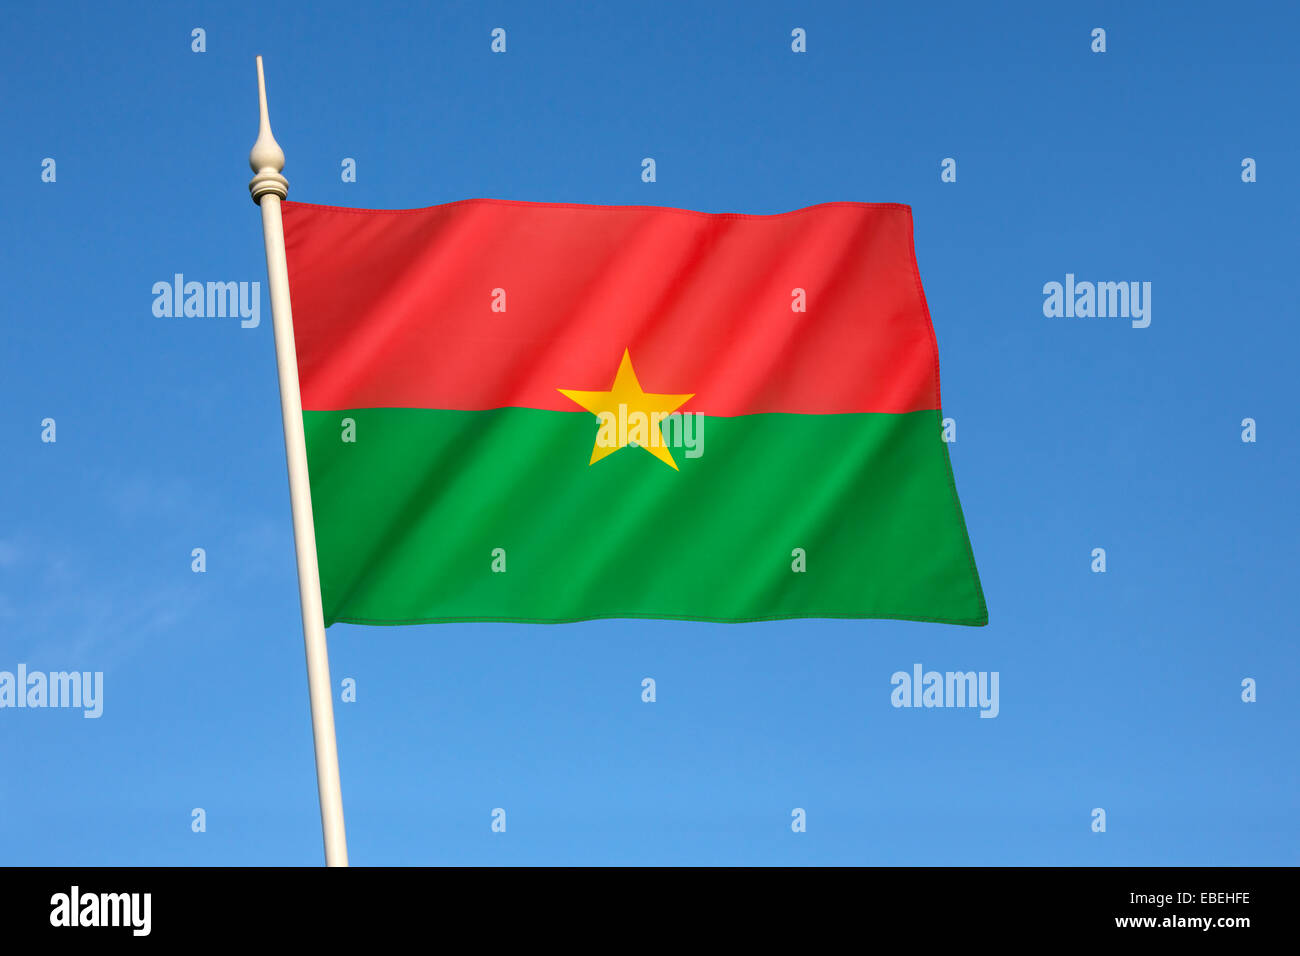 Flag of Burkina Faso - Stock Image